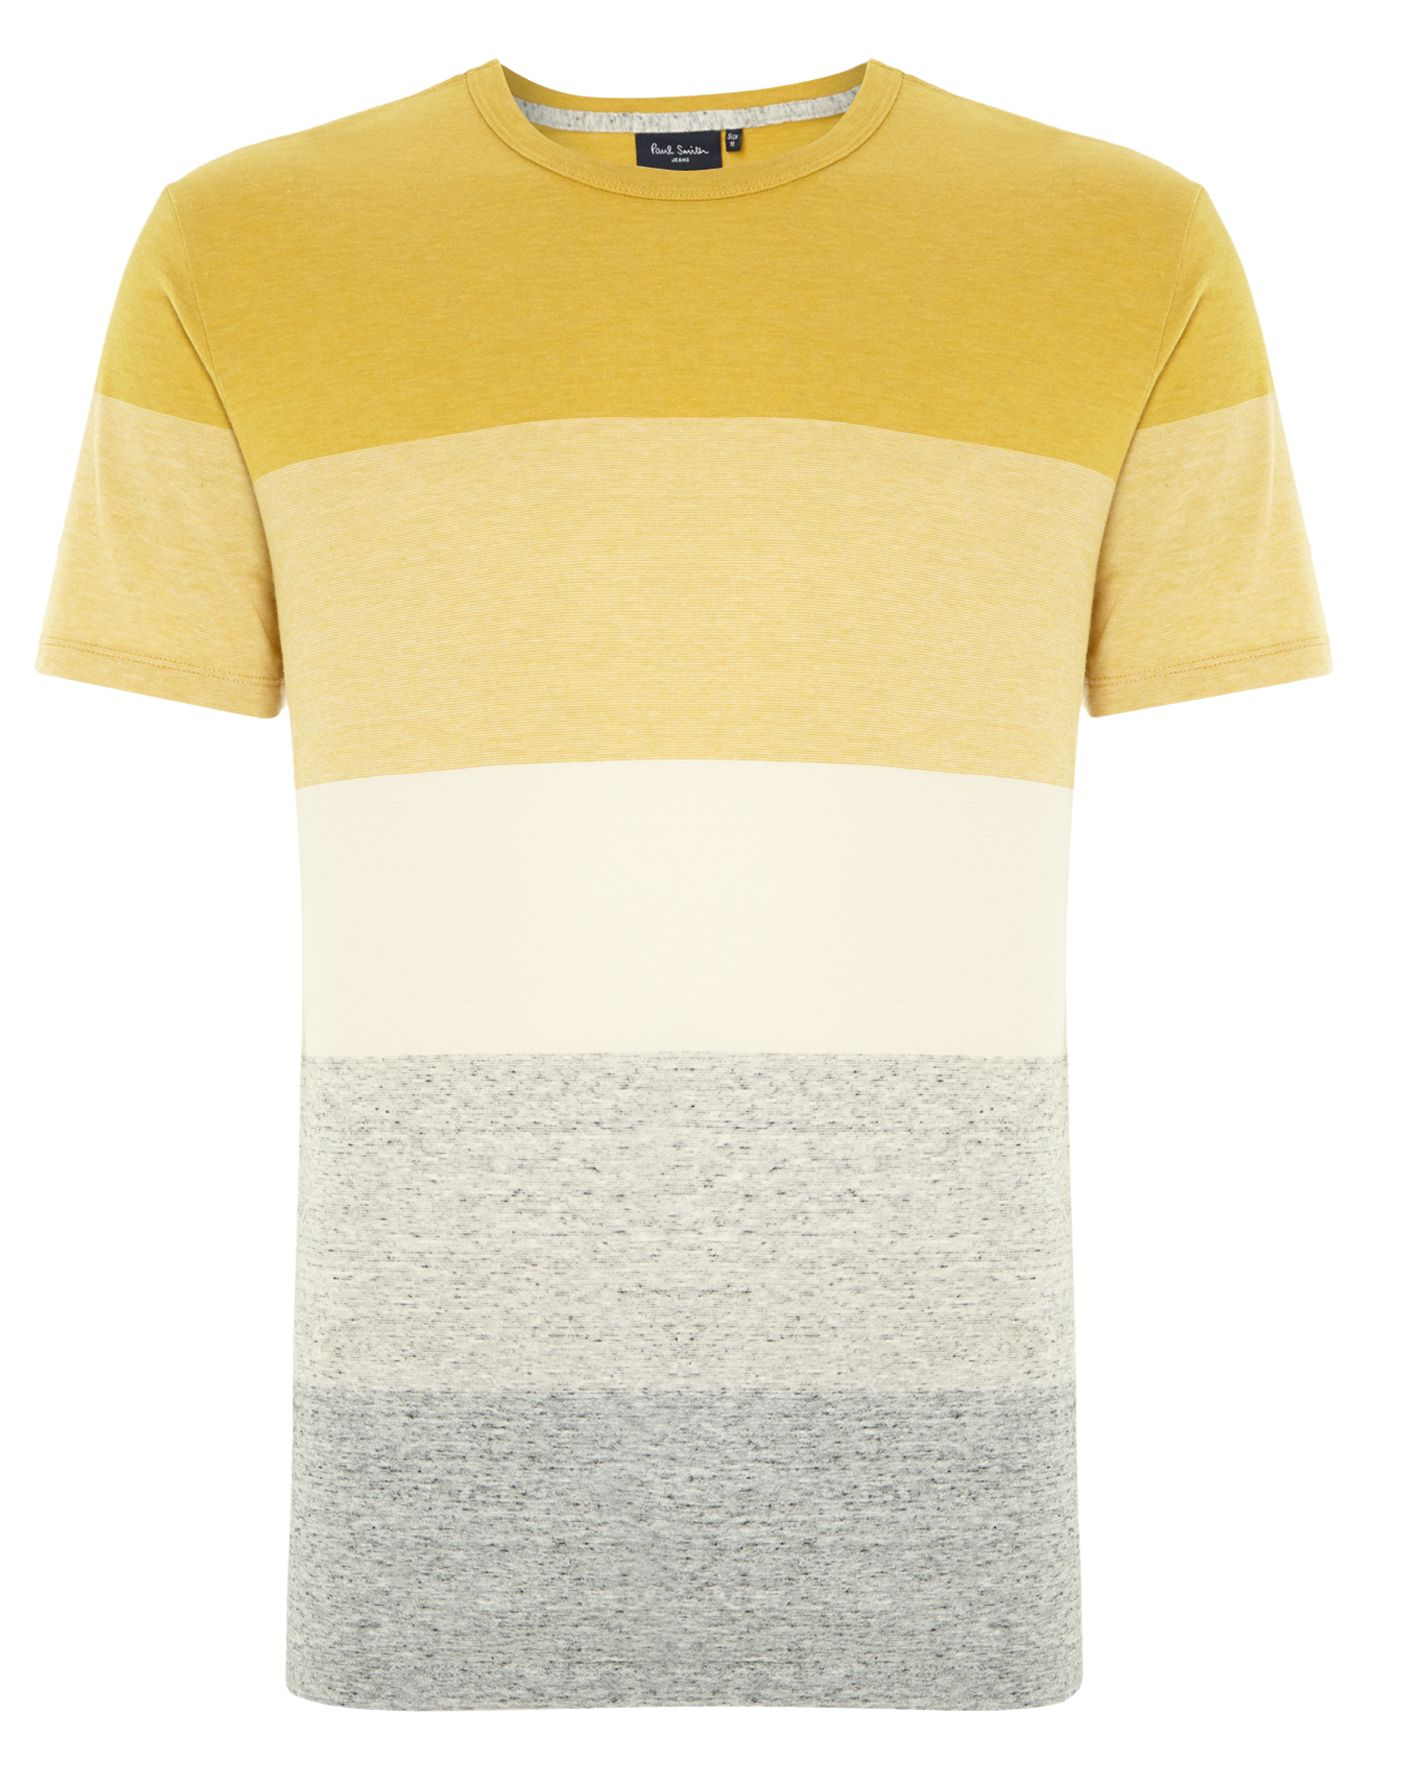 Block stripe t shirt